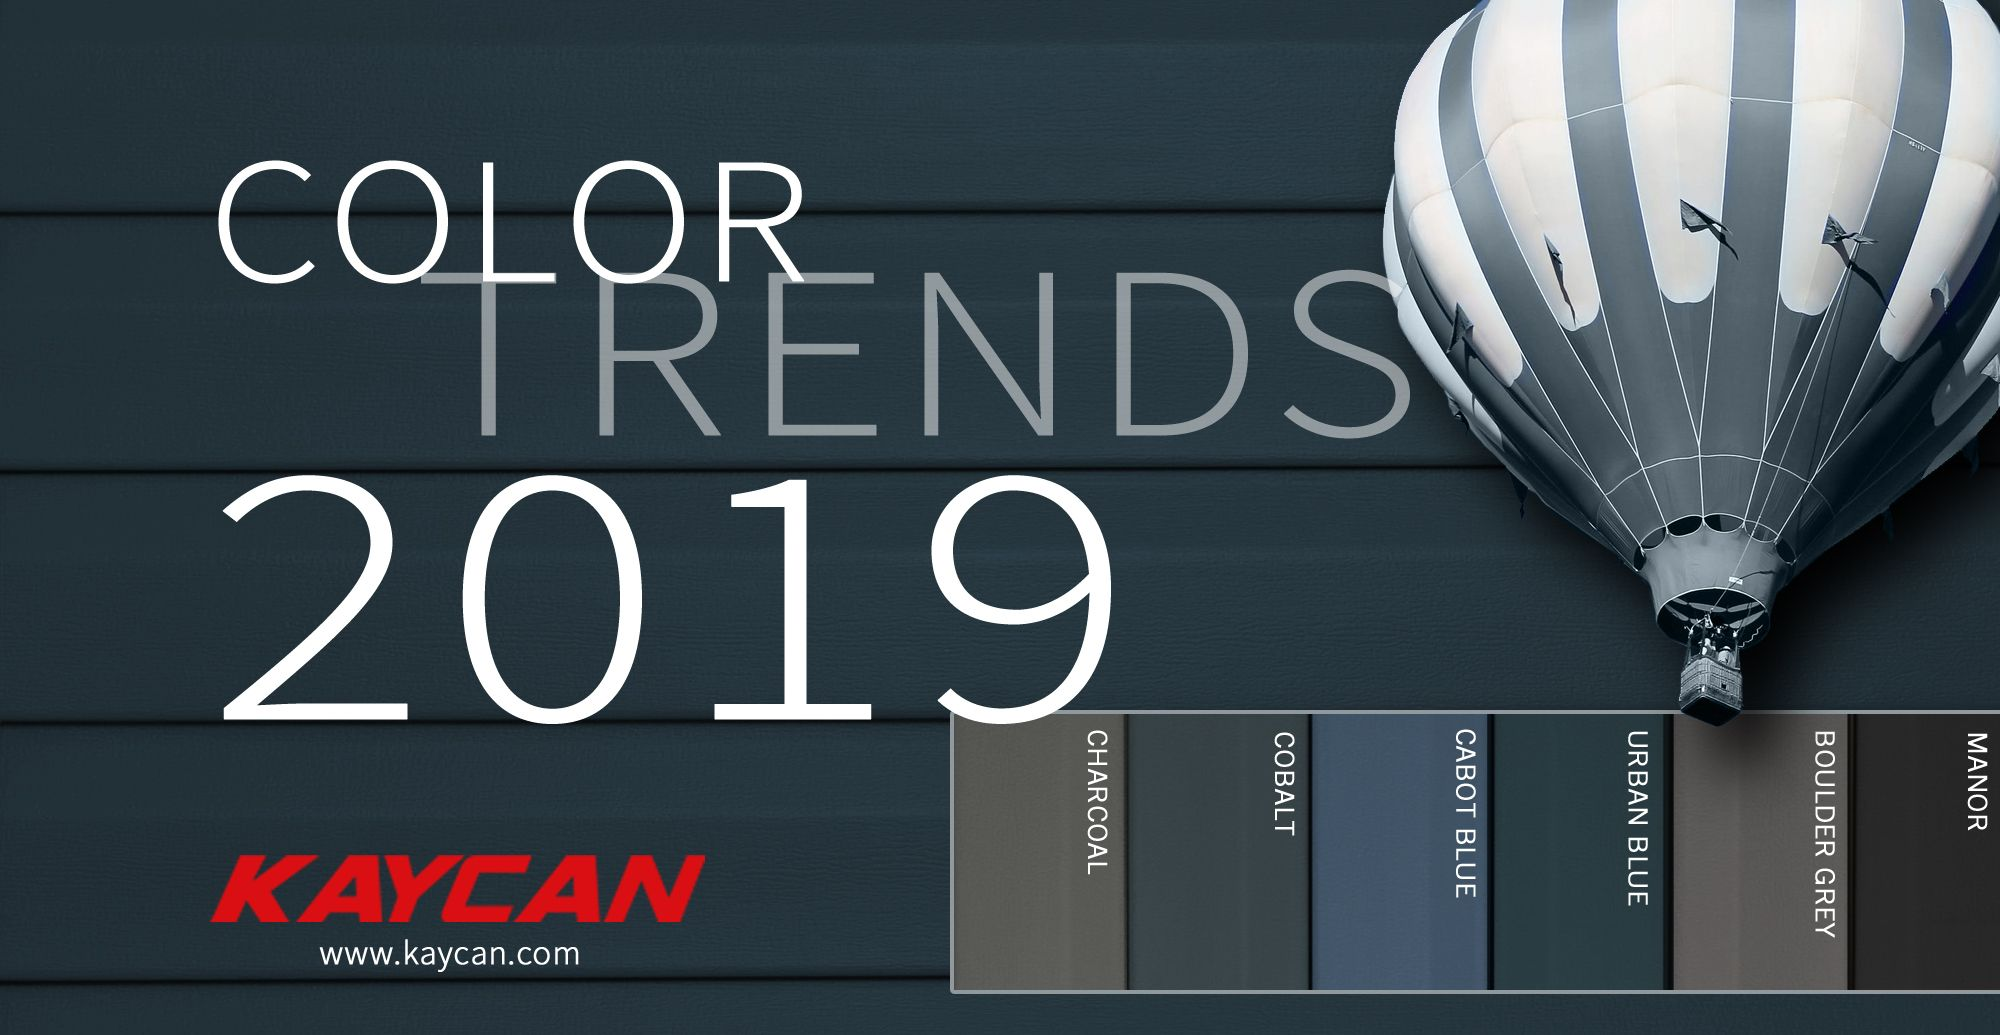 This Year S Color Trends Reflect The Current Push Towards Darker Richer Shades The Following Colors Are Predic Vinyl Siding Colors Siding Colors Vinyl Siding